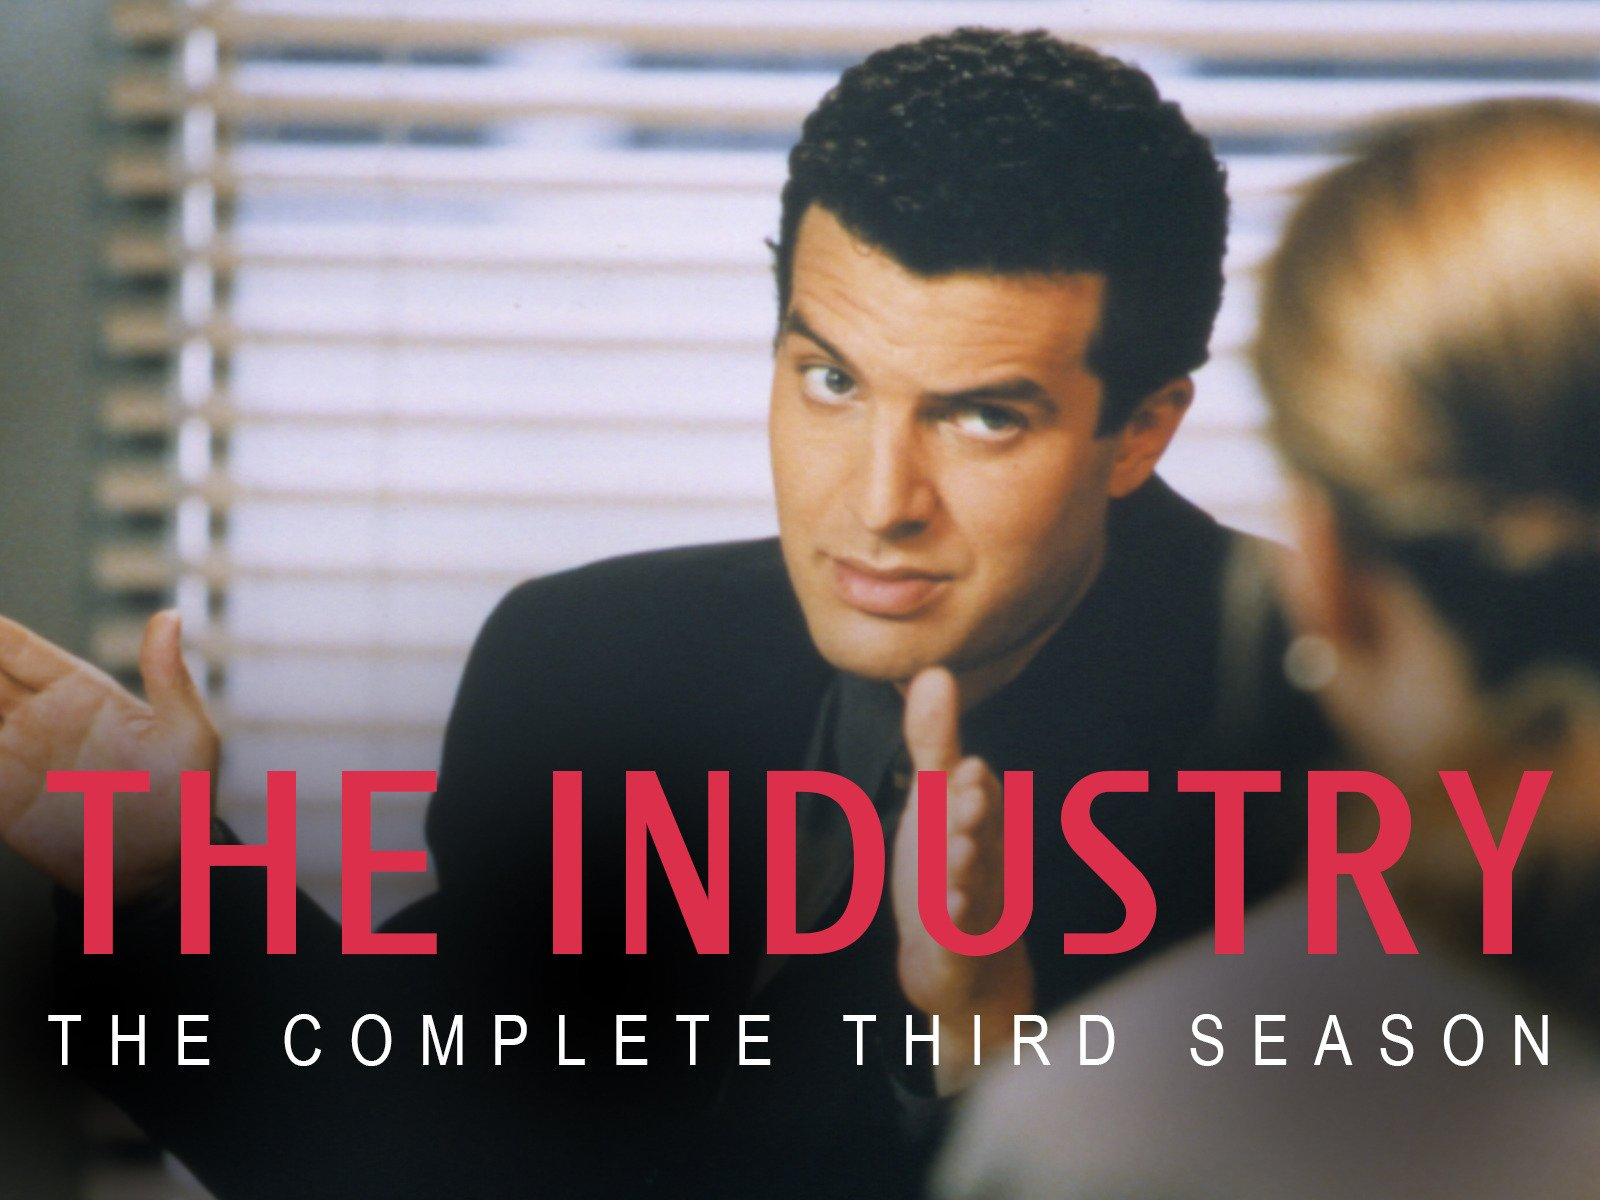 The Industry - Season 3